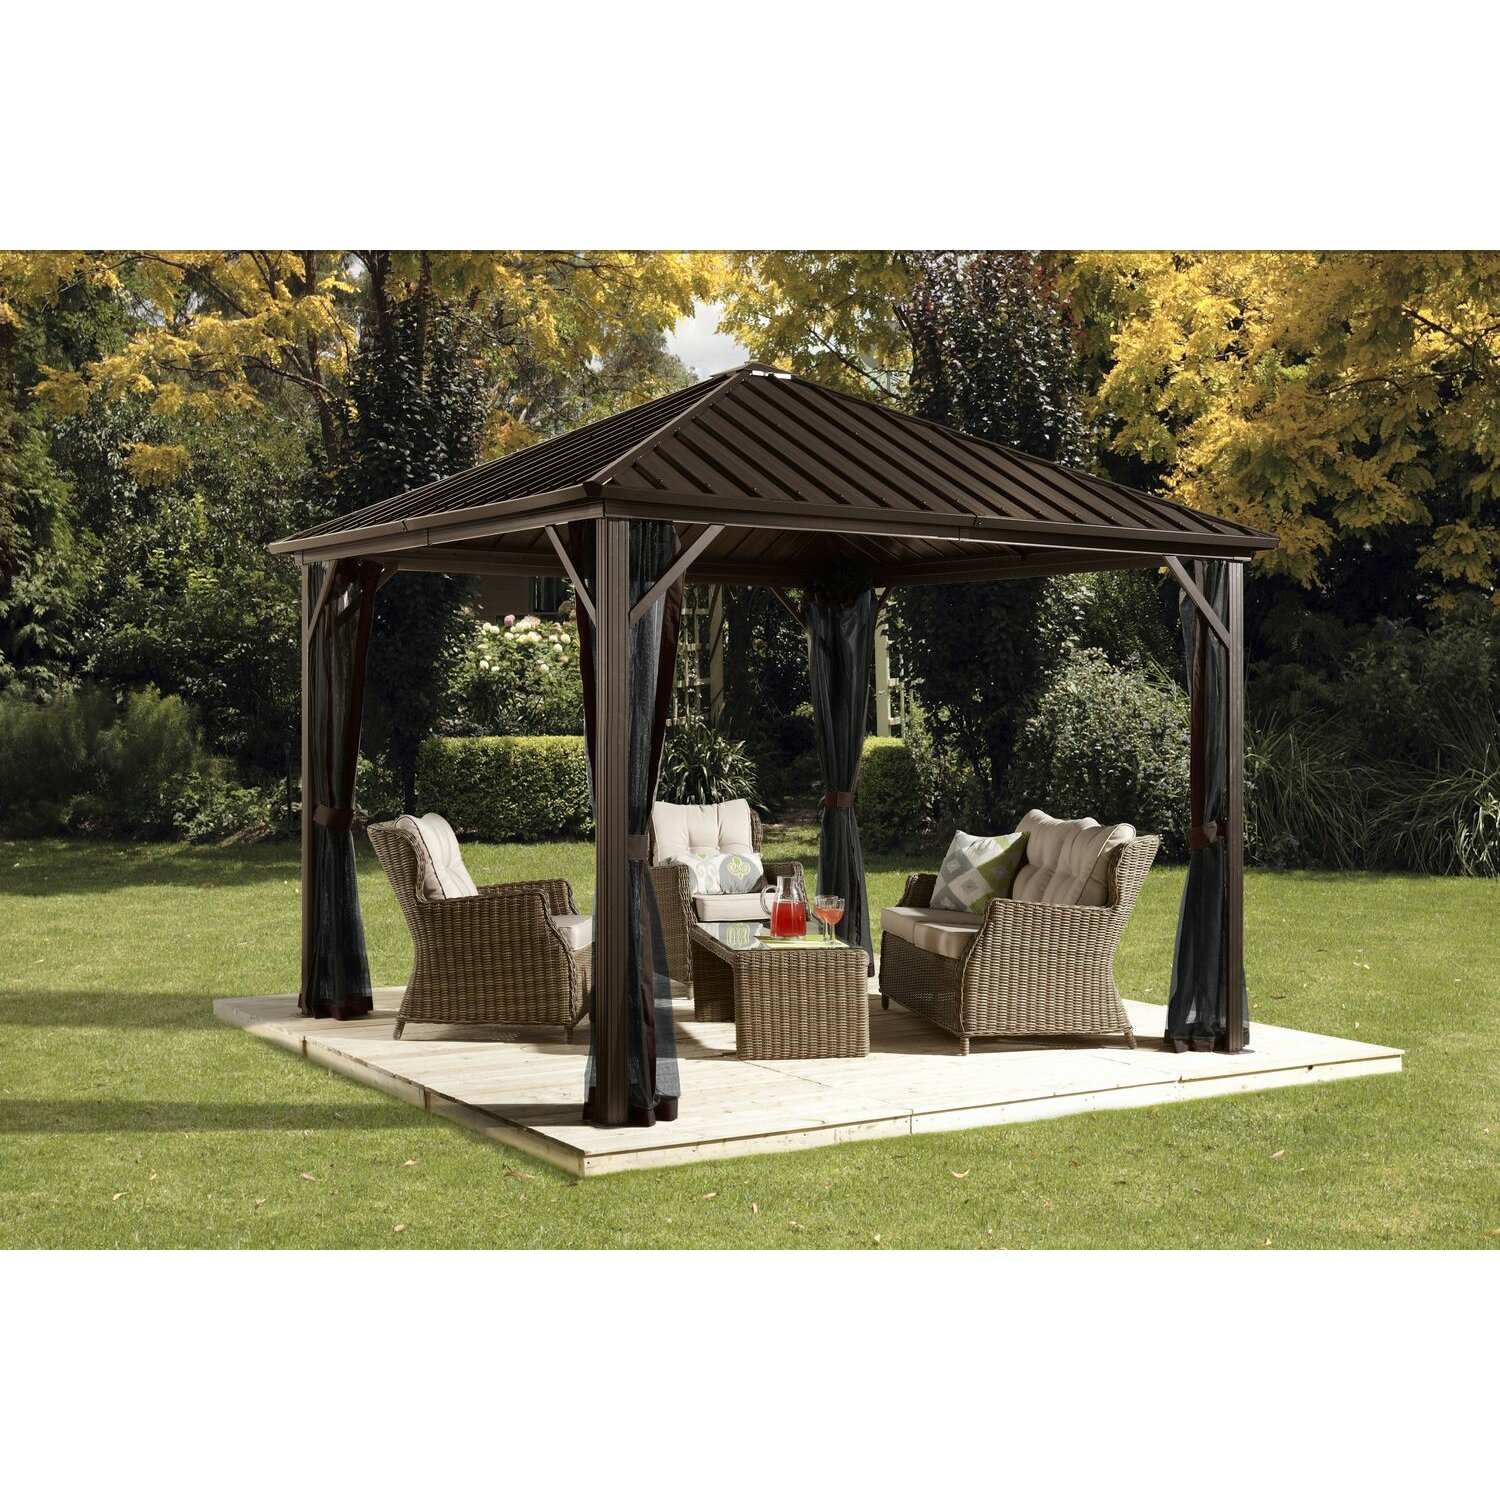 Sojag Dakota 10 Ft W X 10 Ft D Metal Permanent Gazebo